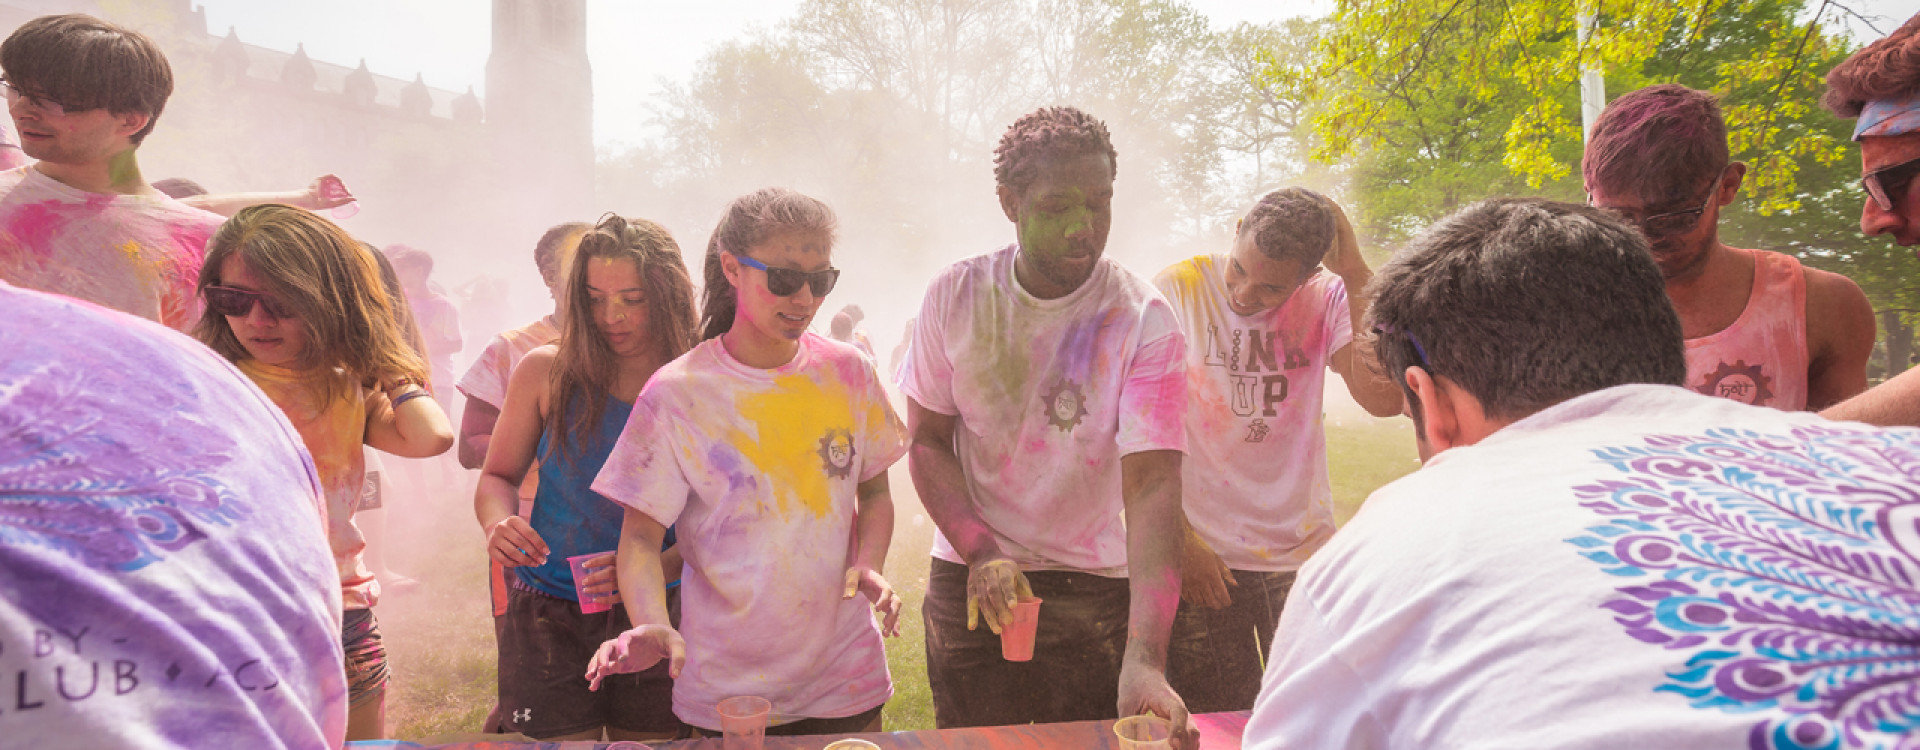 Holi, Festival of Colors